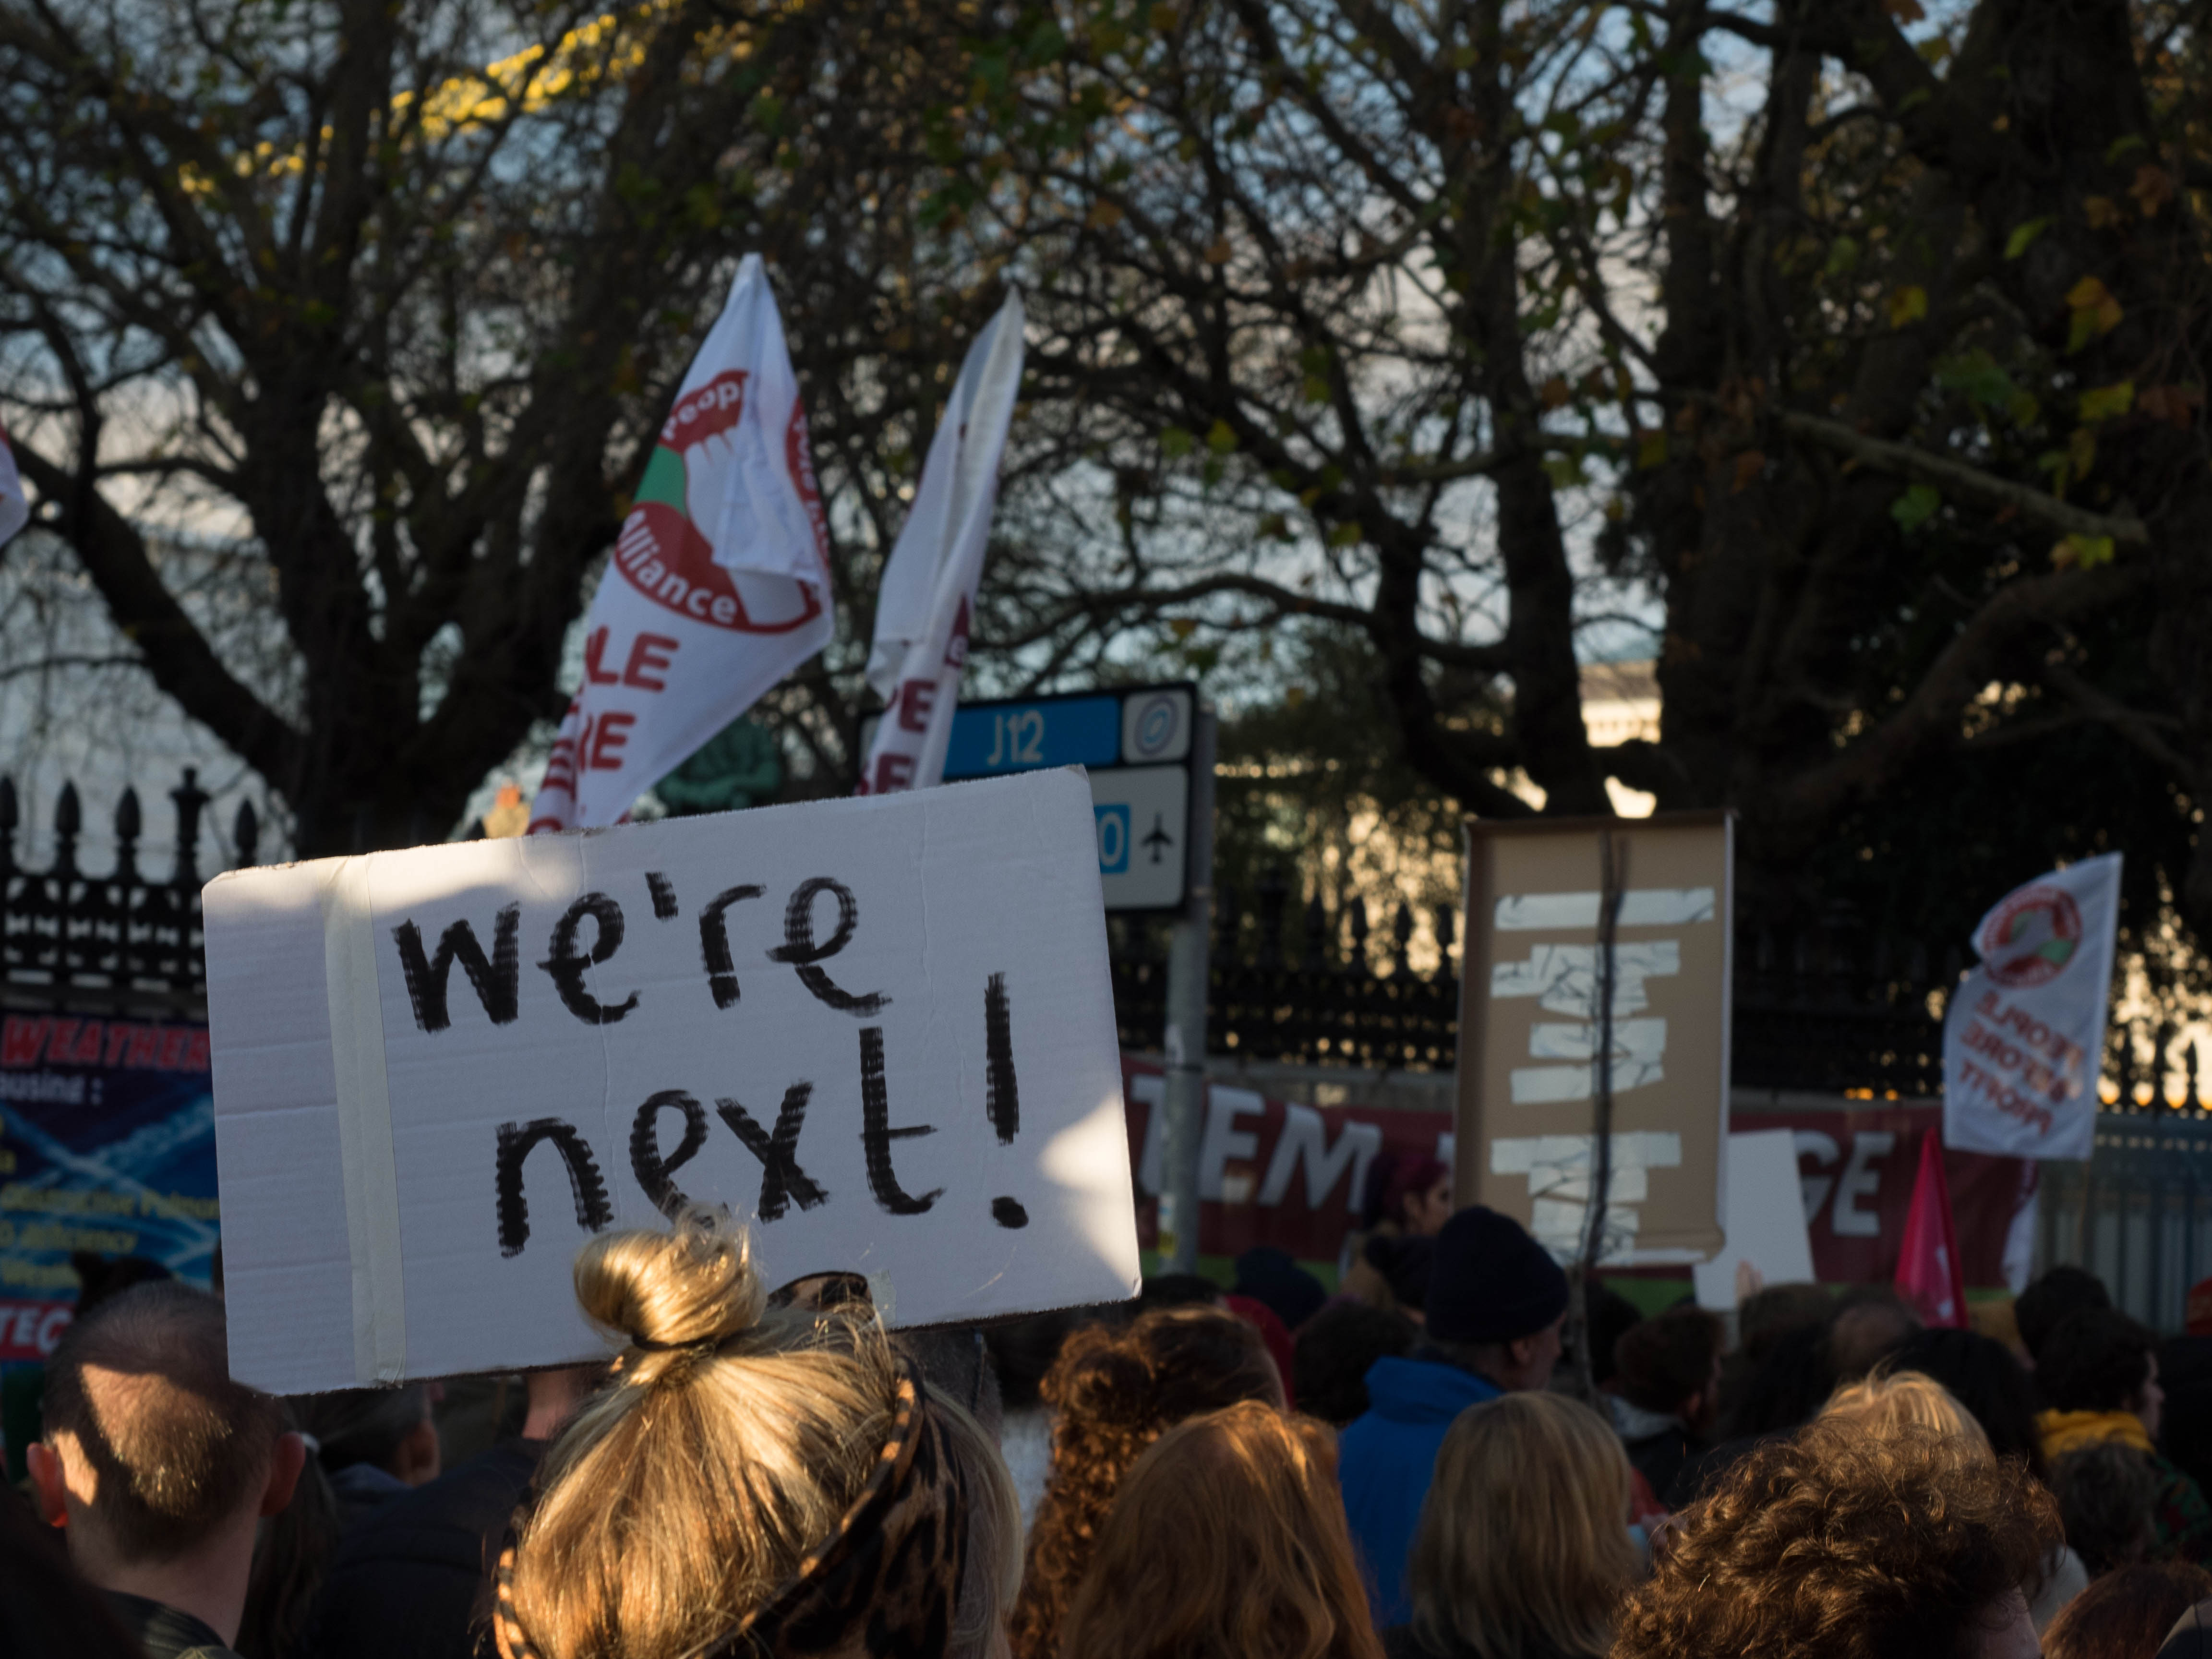 What I think about the Extinction Rebellion protests